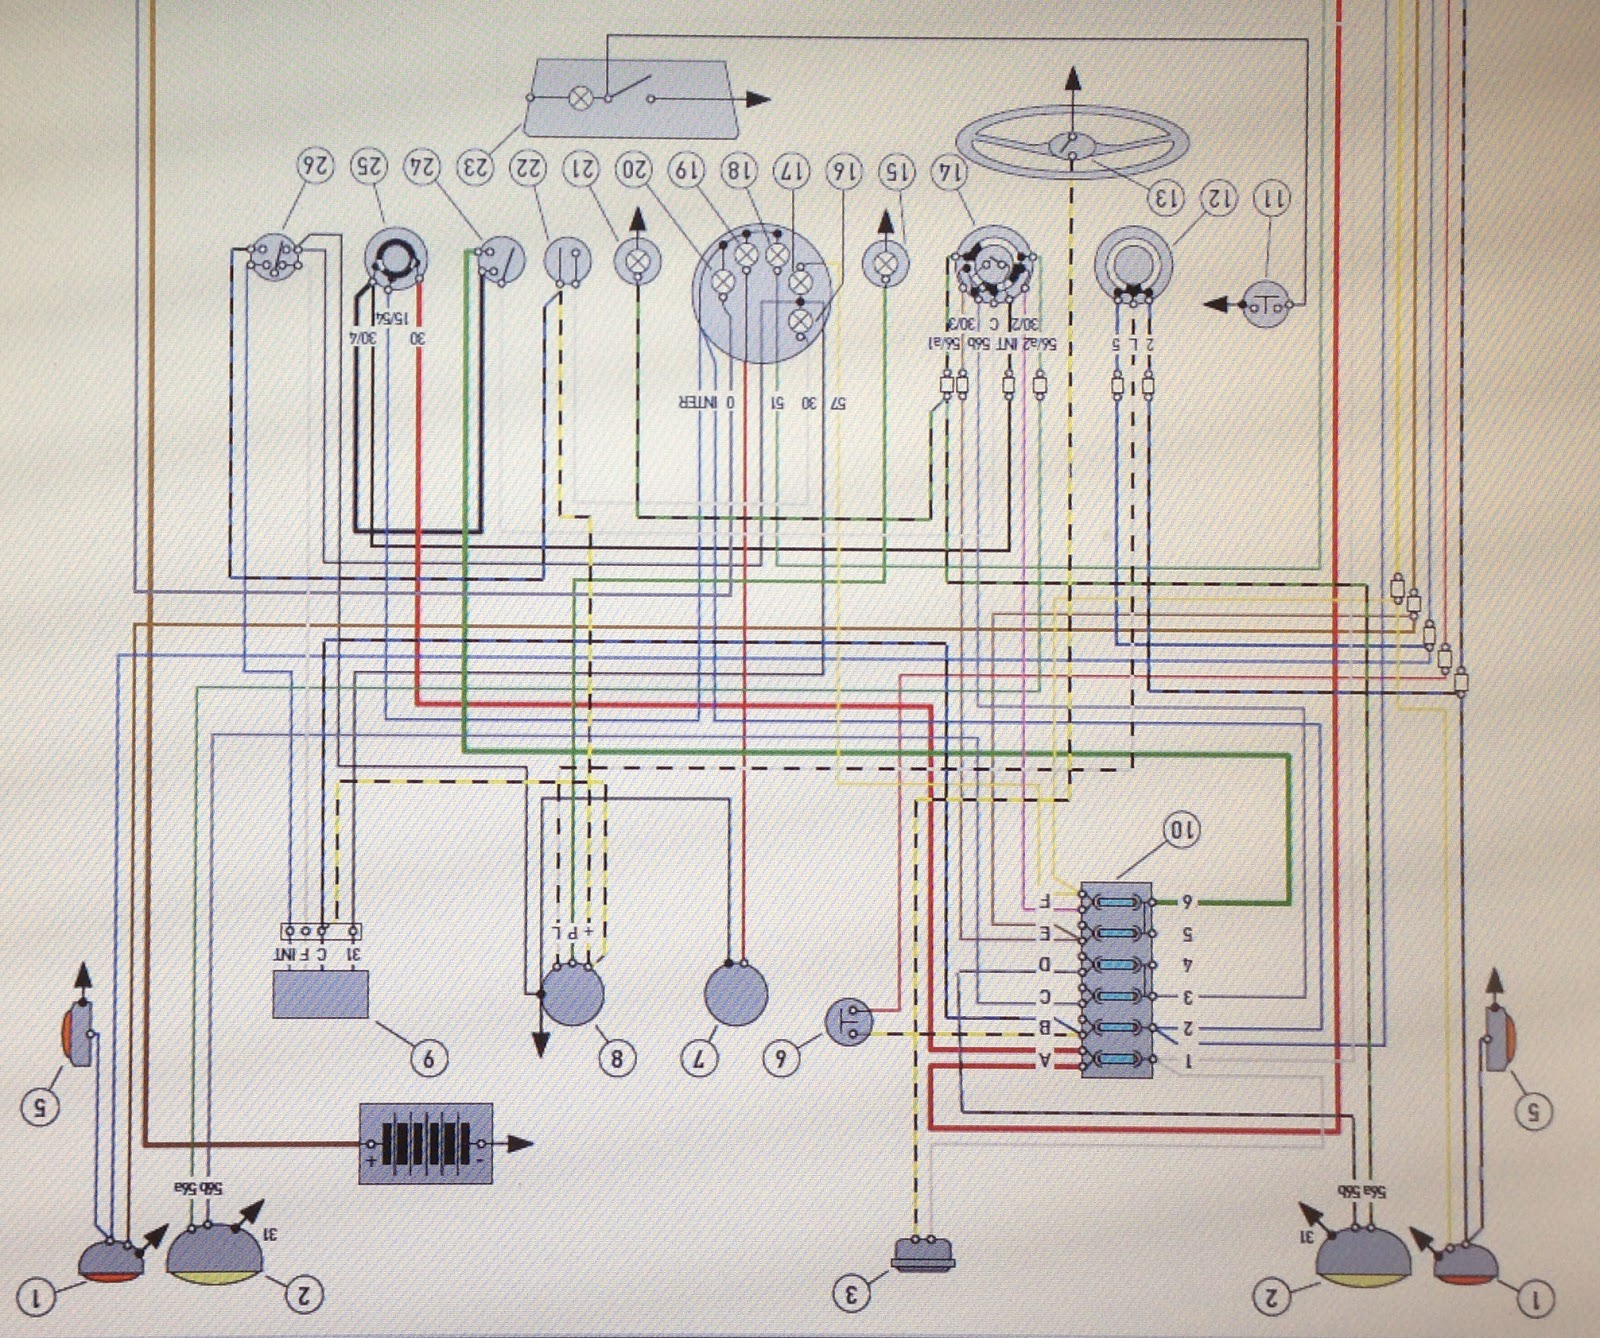 hight resolution of fiat 500 wiring diagram wiring diagram third level rh 2 7 20 jacobwinterstein com fiat 500